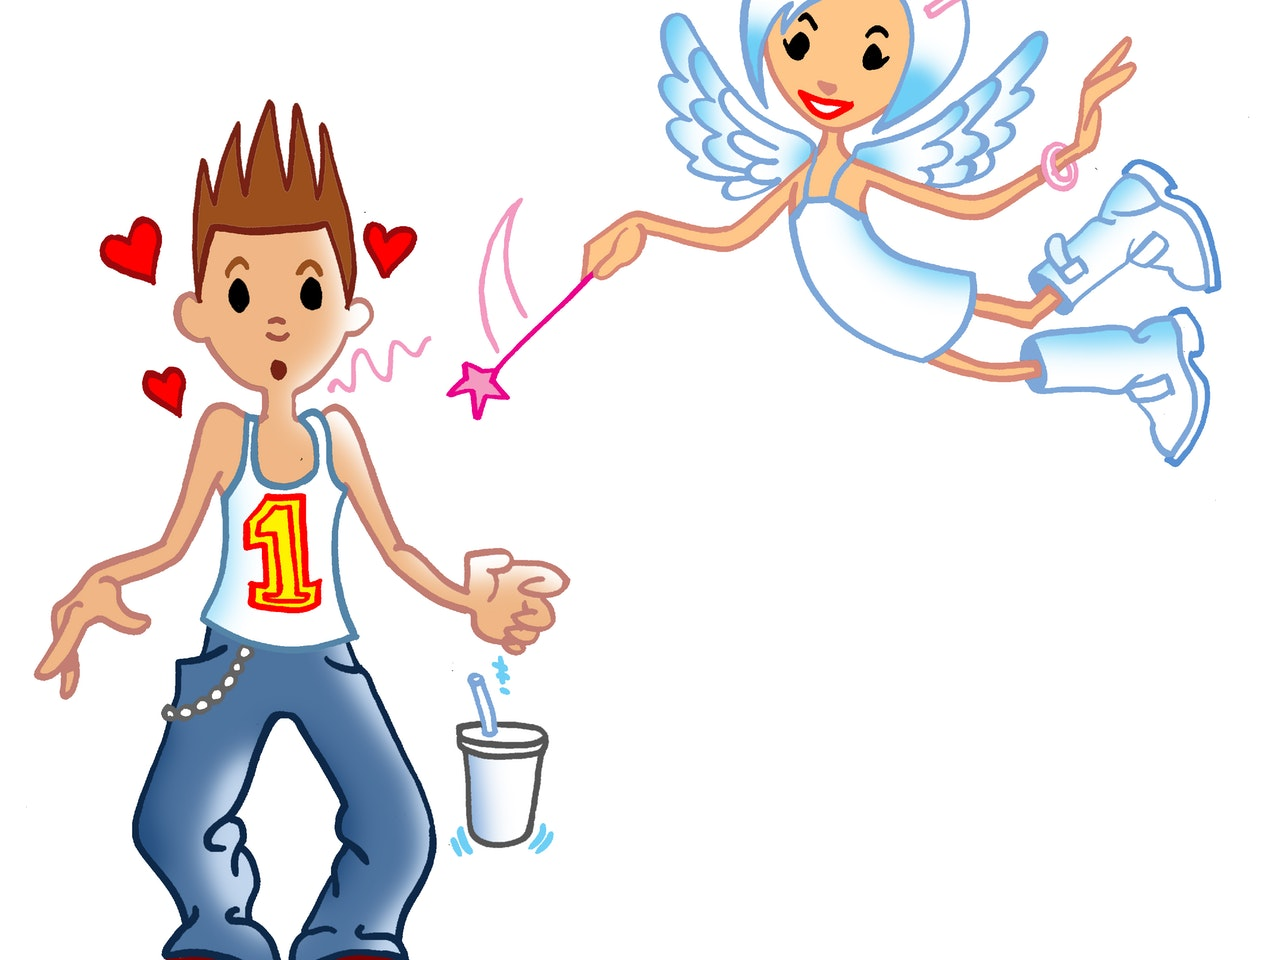 illustration animation  humorous comical colourful graphic cartoon manga anime publishing  cupid love valentines day heart angel teenagers romance